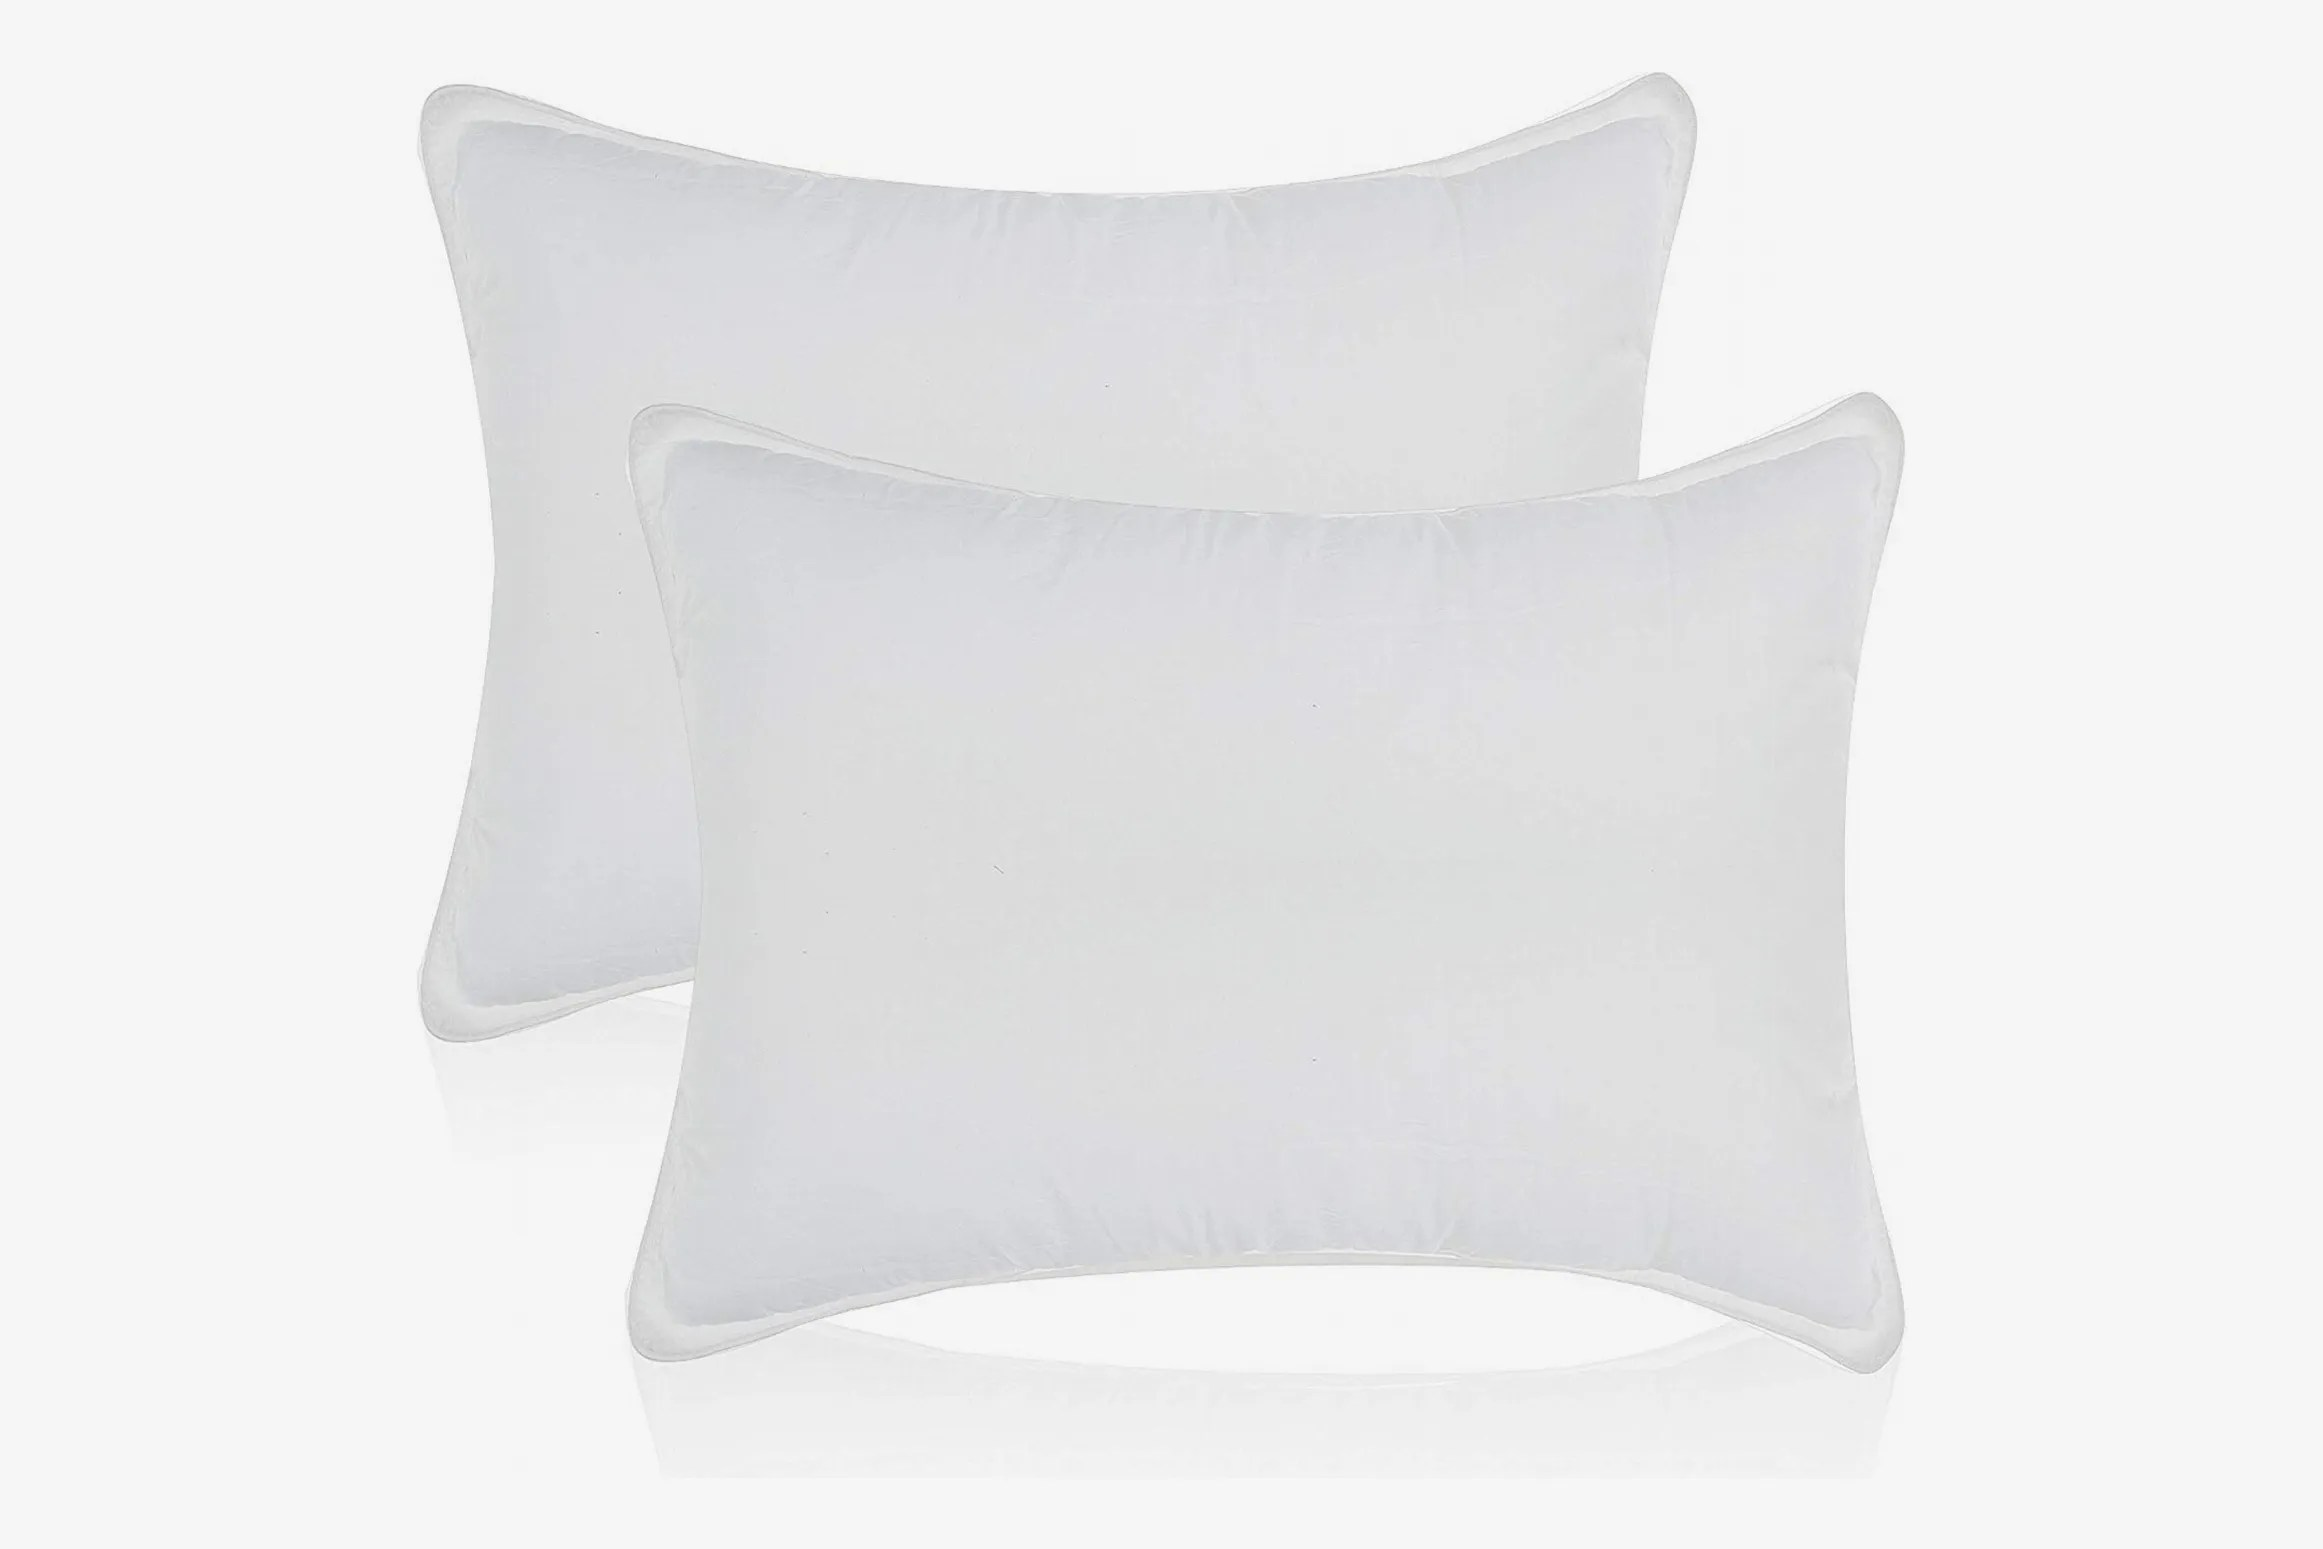 https nymag com strategist article best pillows html